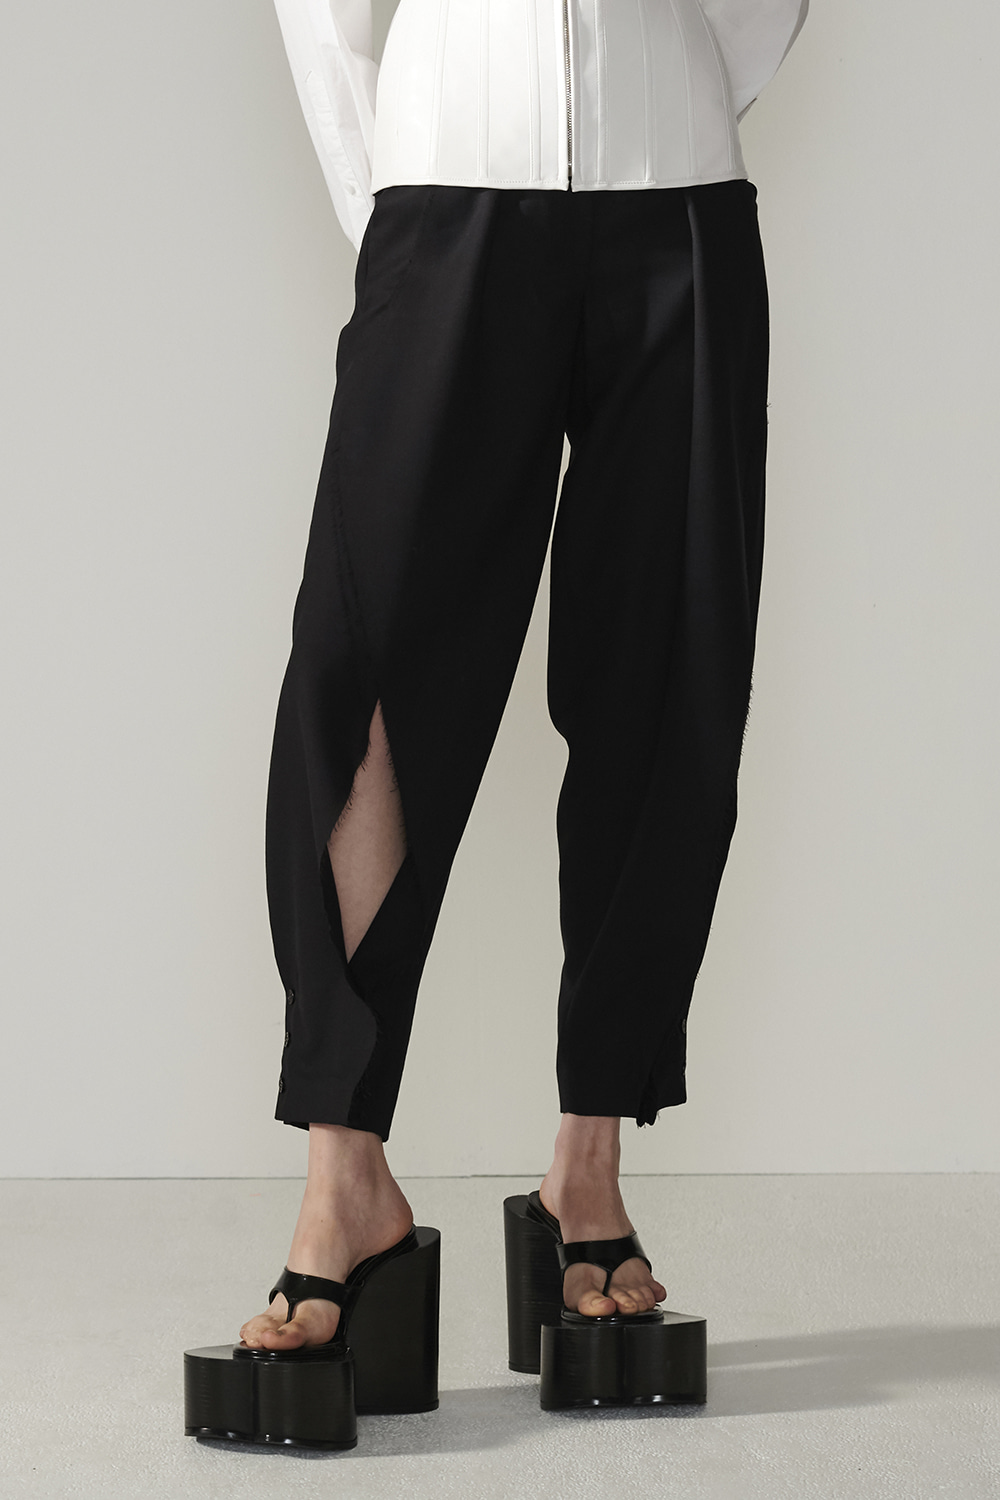 SS21 BLOWING FRONT BLACK PANTS